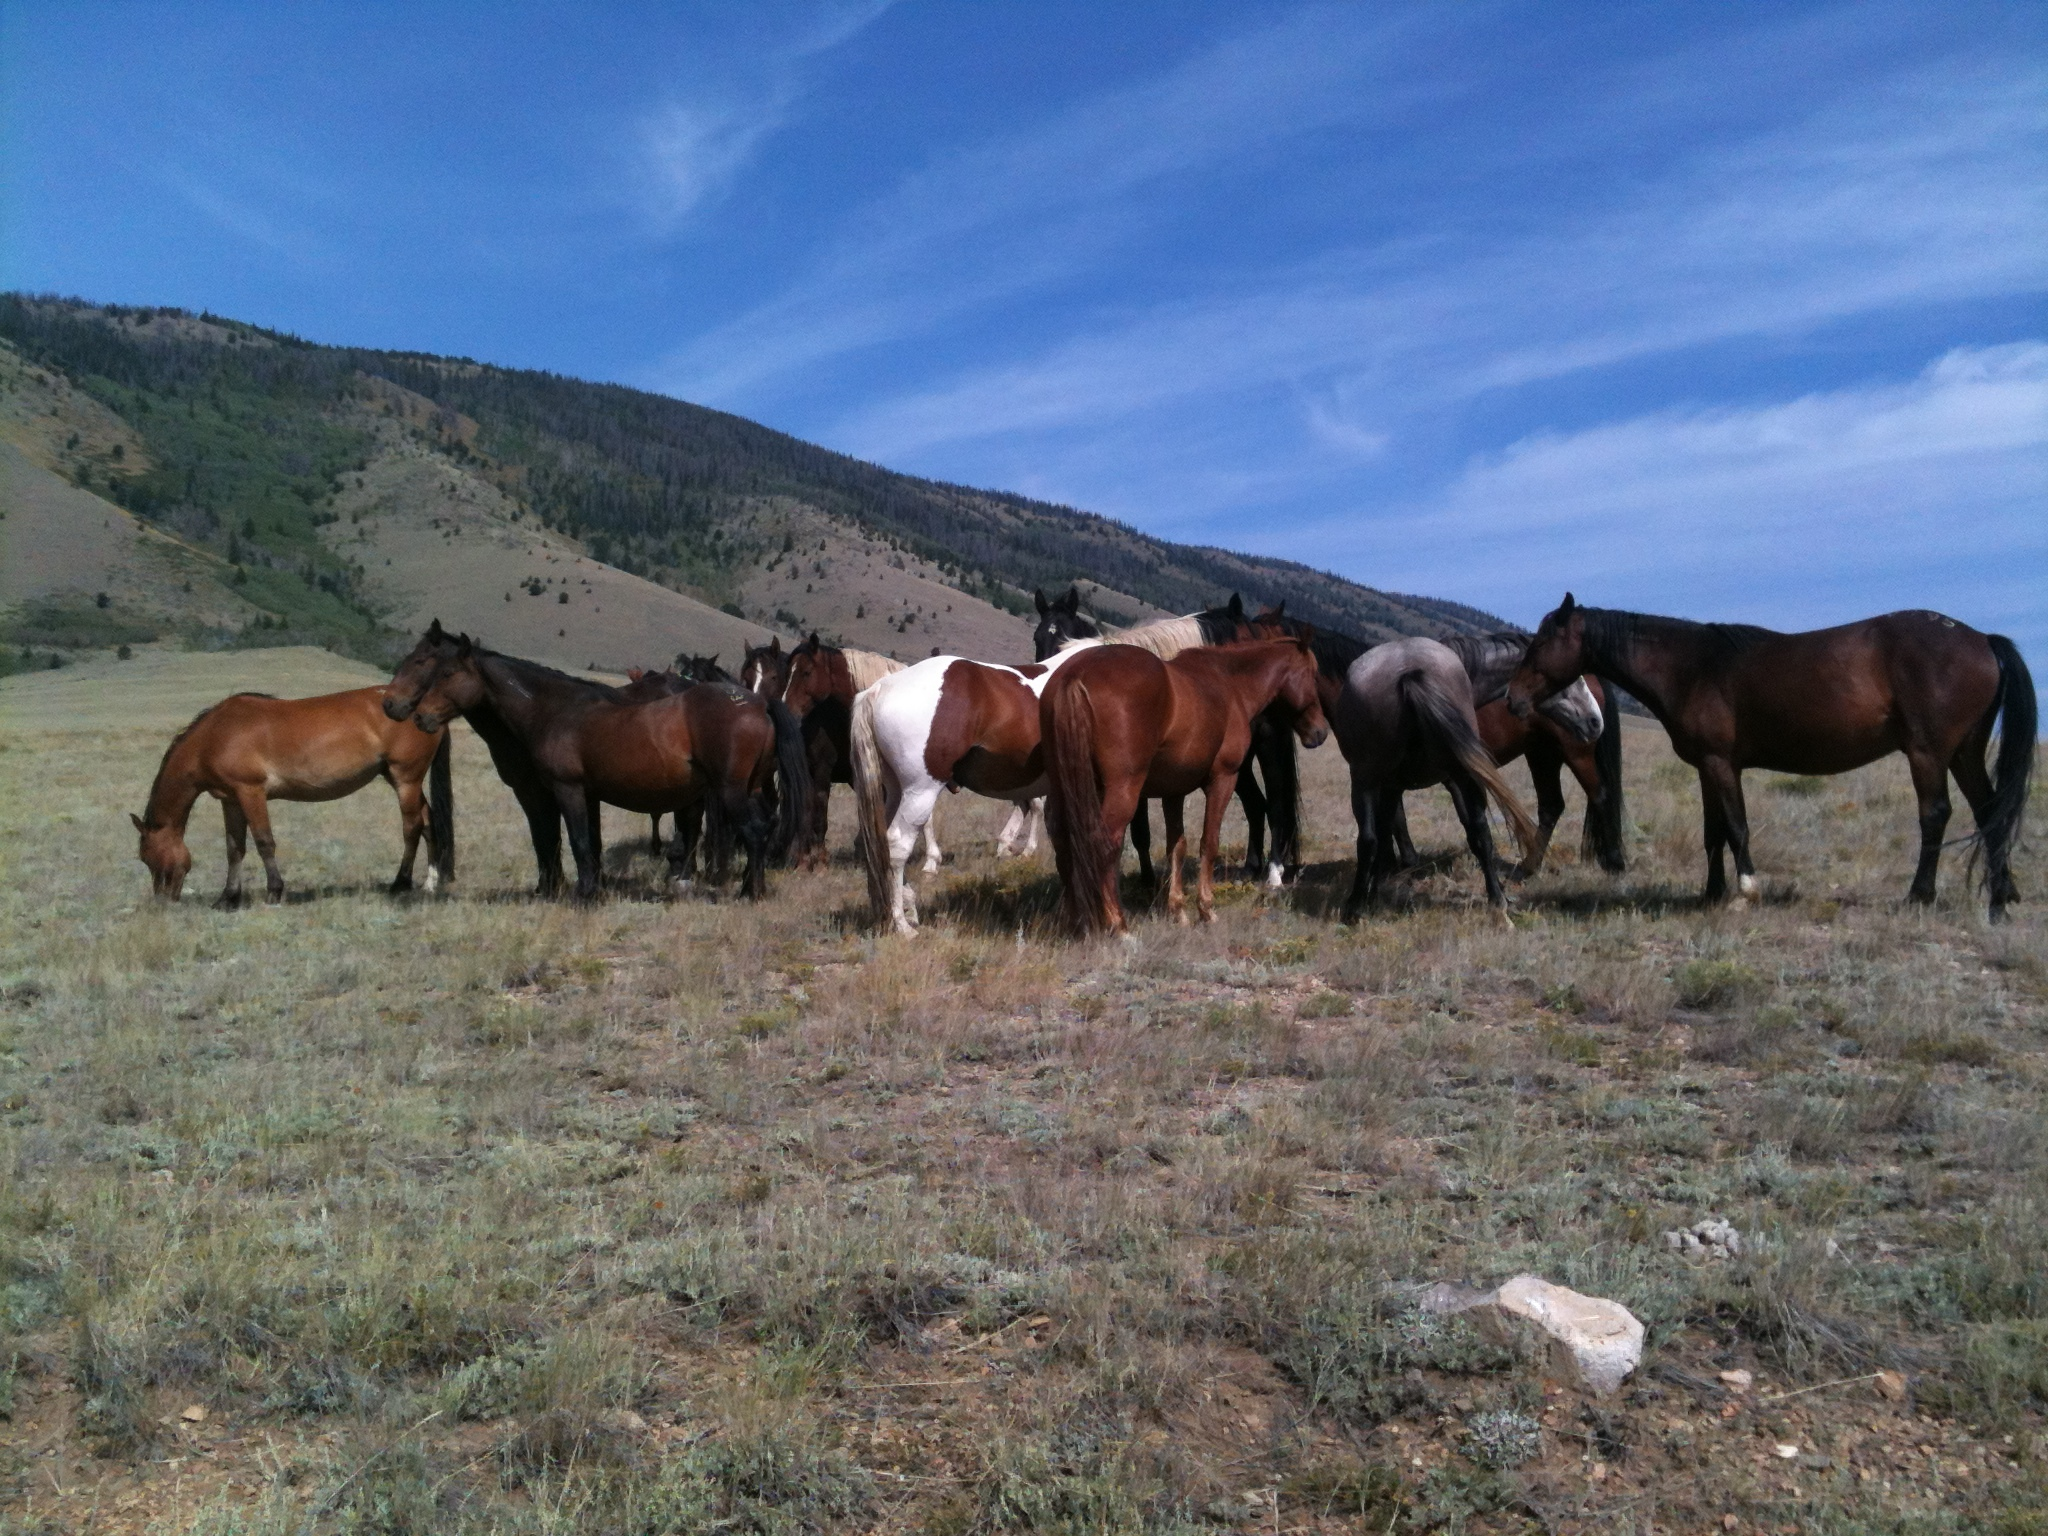 A herd of wild horses in Wyoming - waiting.